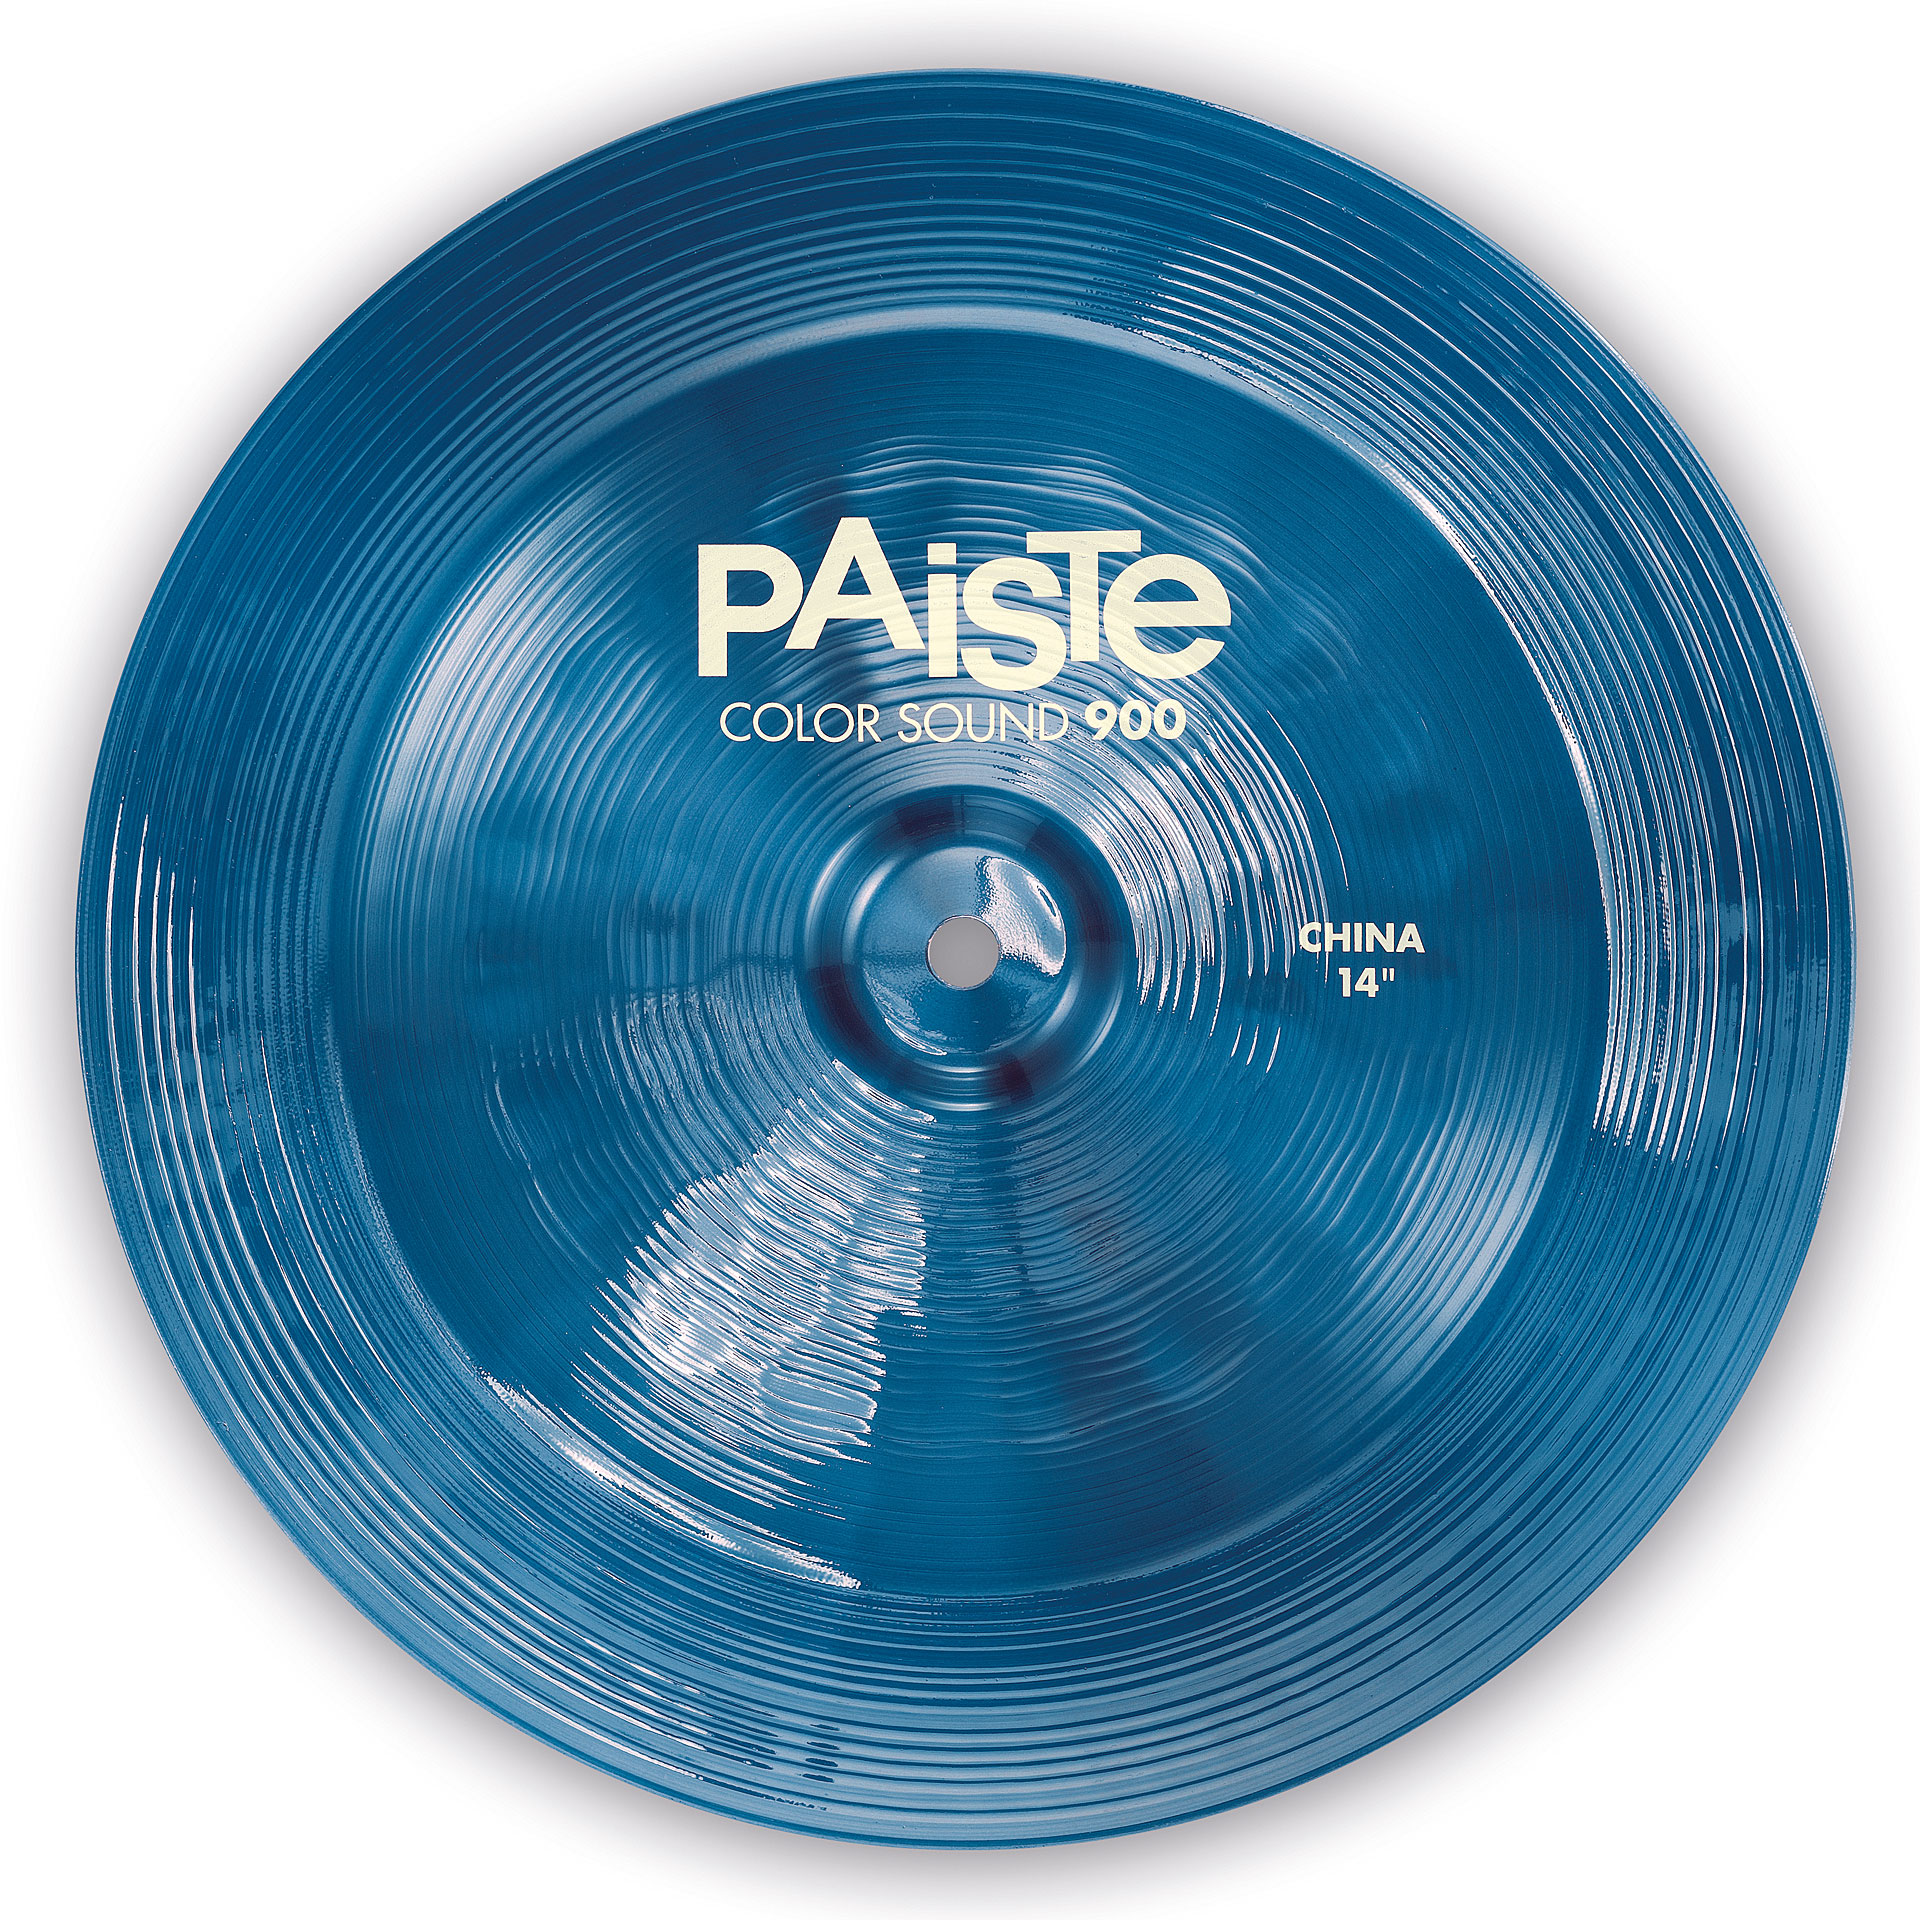 paiste color sound 900 blue 14 china chinese cymbal. Black Bedroom Furniture Sets. Home Design Ideas